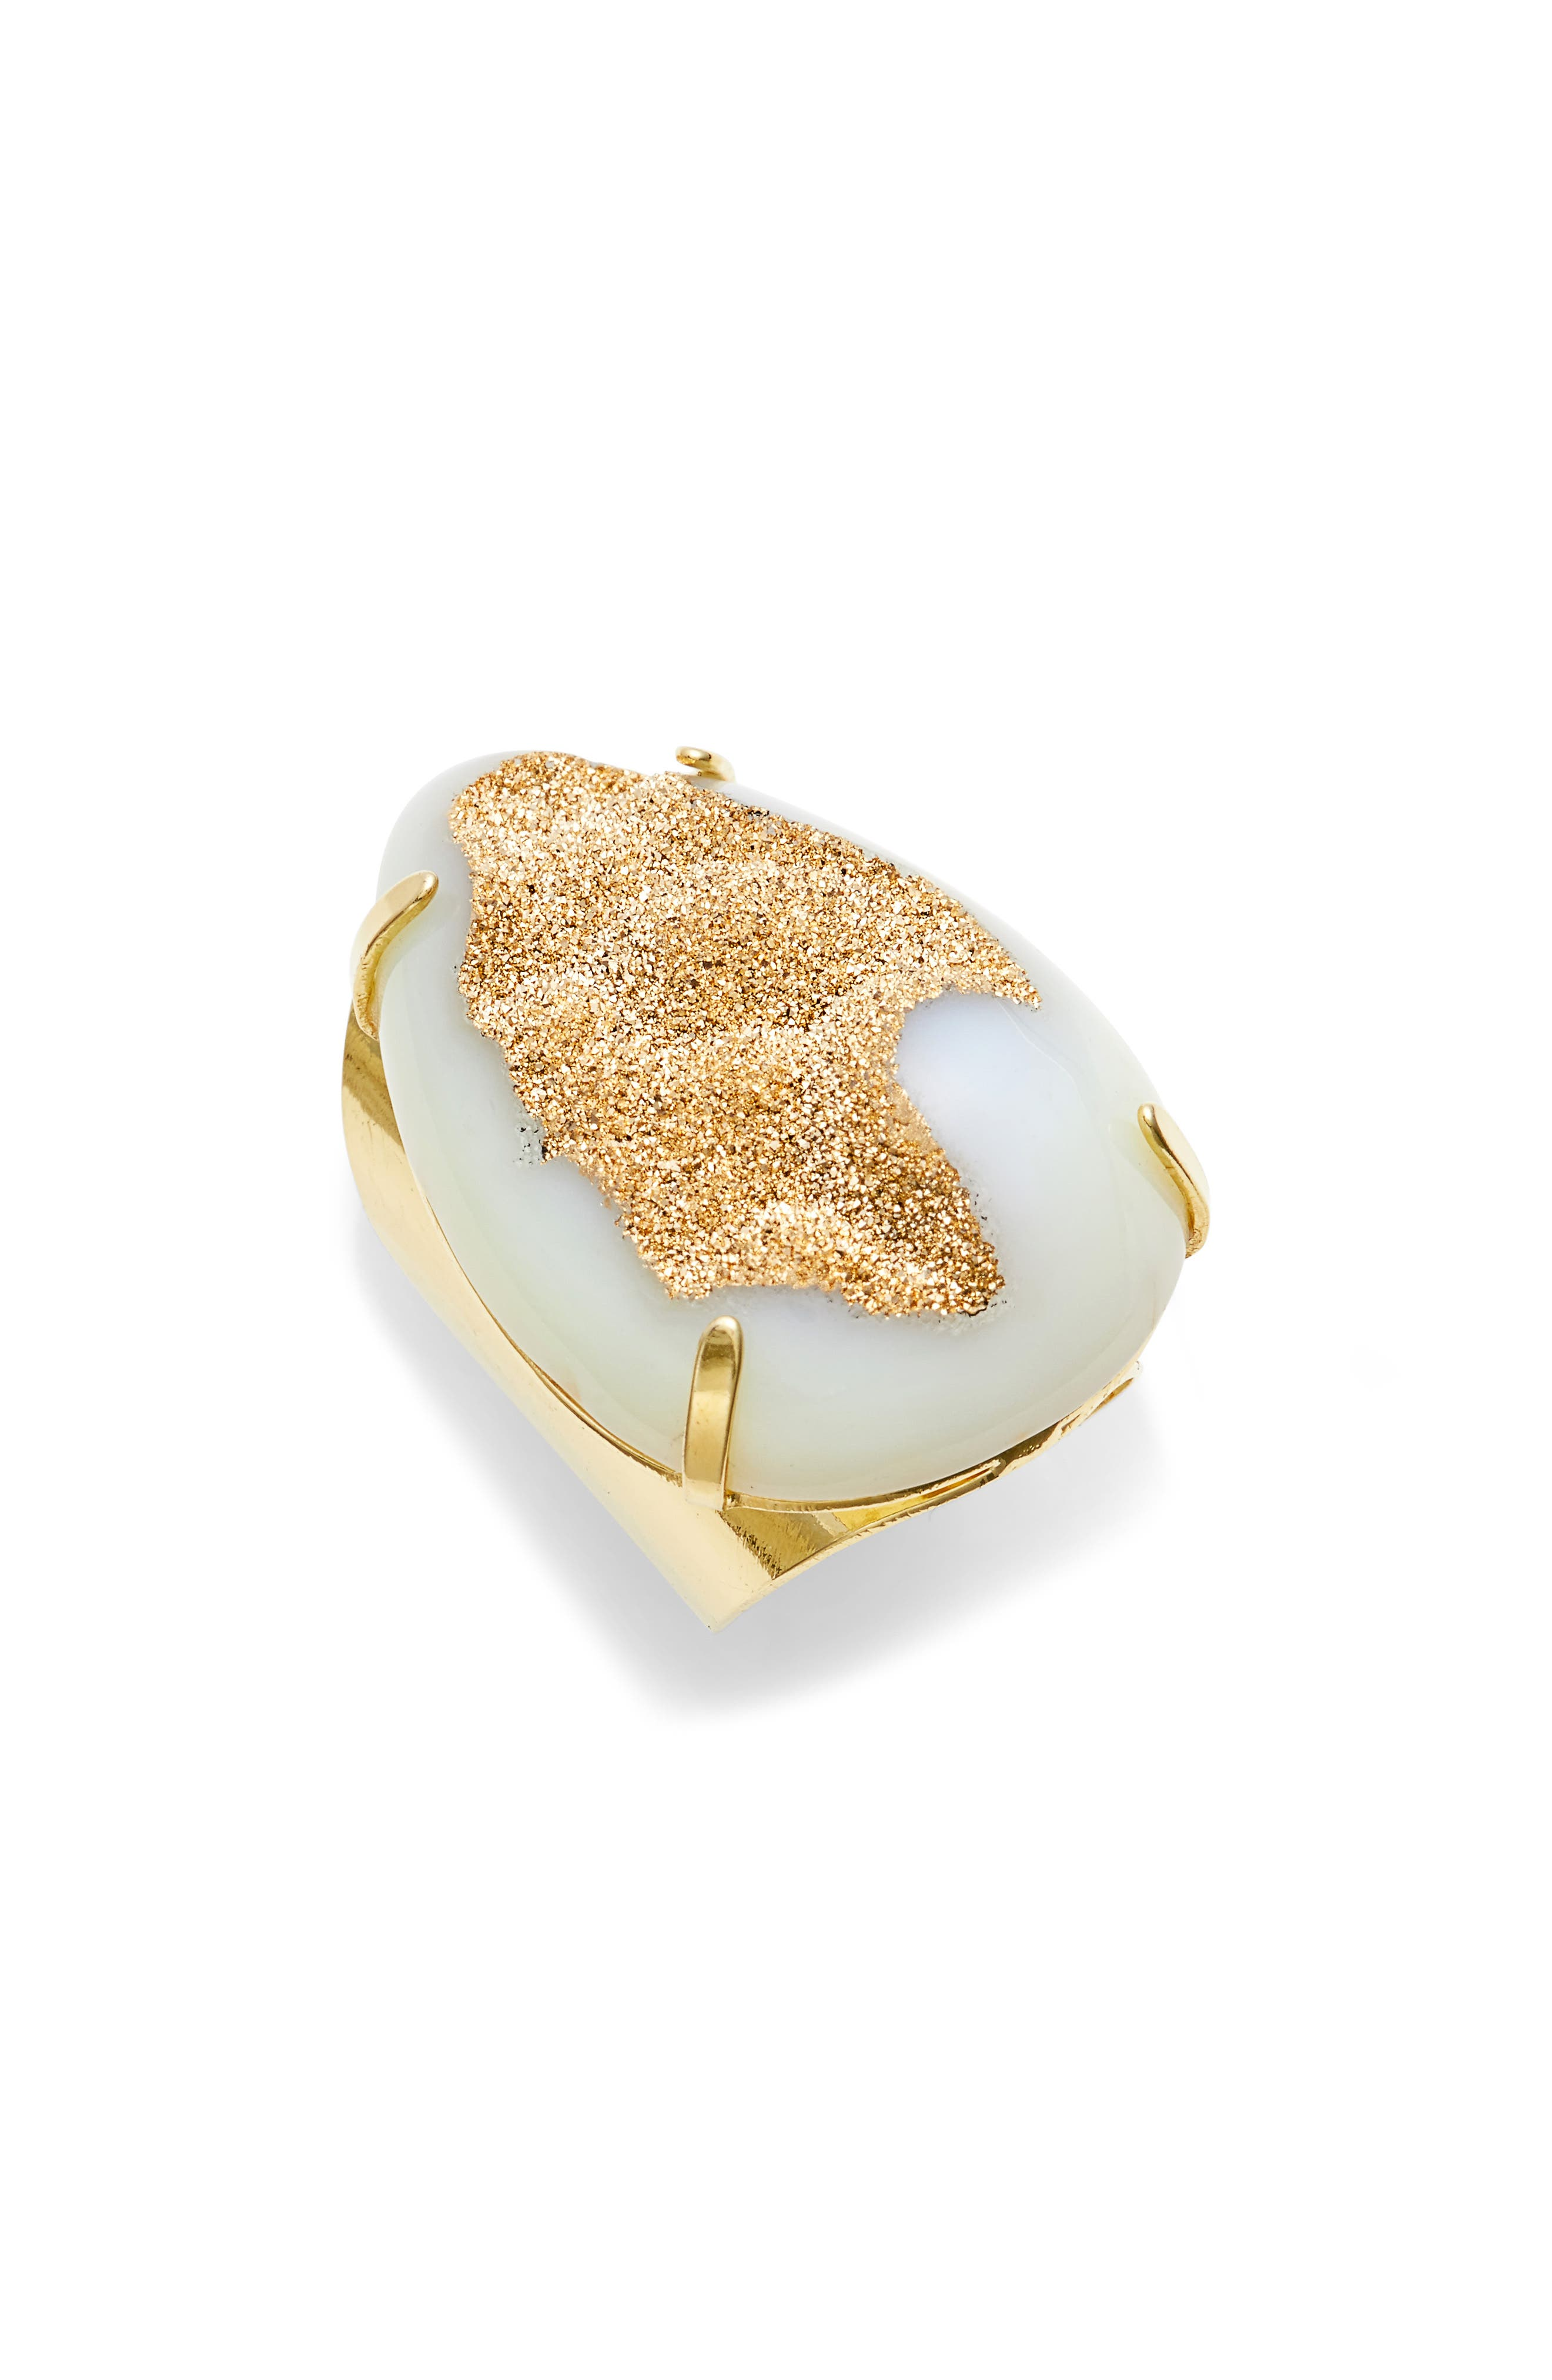 Teardrop Drusy Agate Adjustable Ring,                         Main,                         color, White